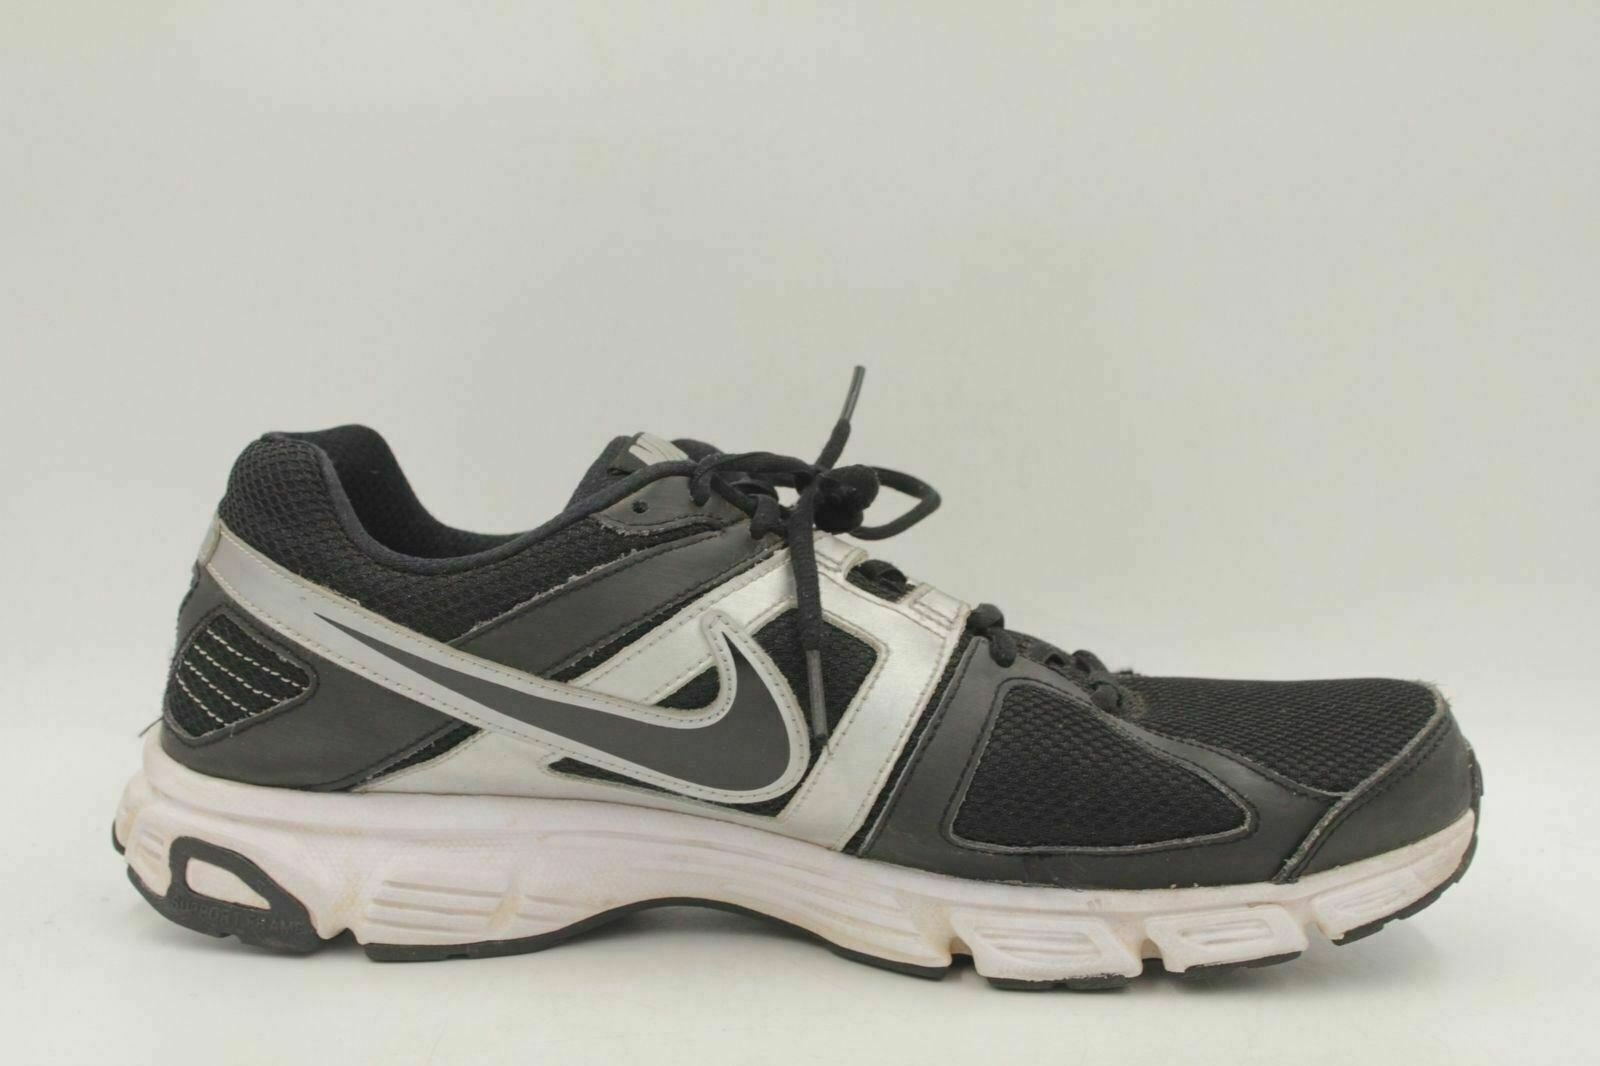 09f0c1ce93c03 NIKE Downshifter 5 Men Athletic Running Shoes Size 12 Black 538257 ...